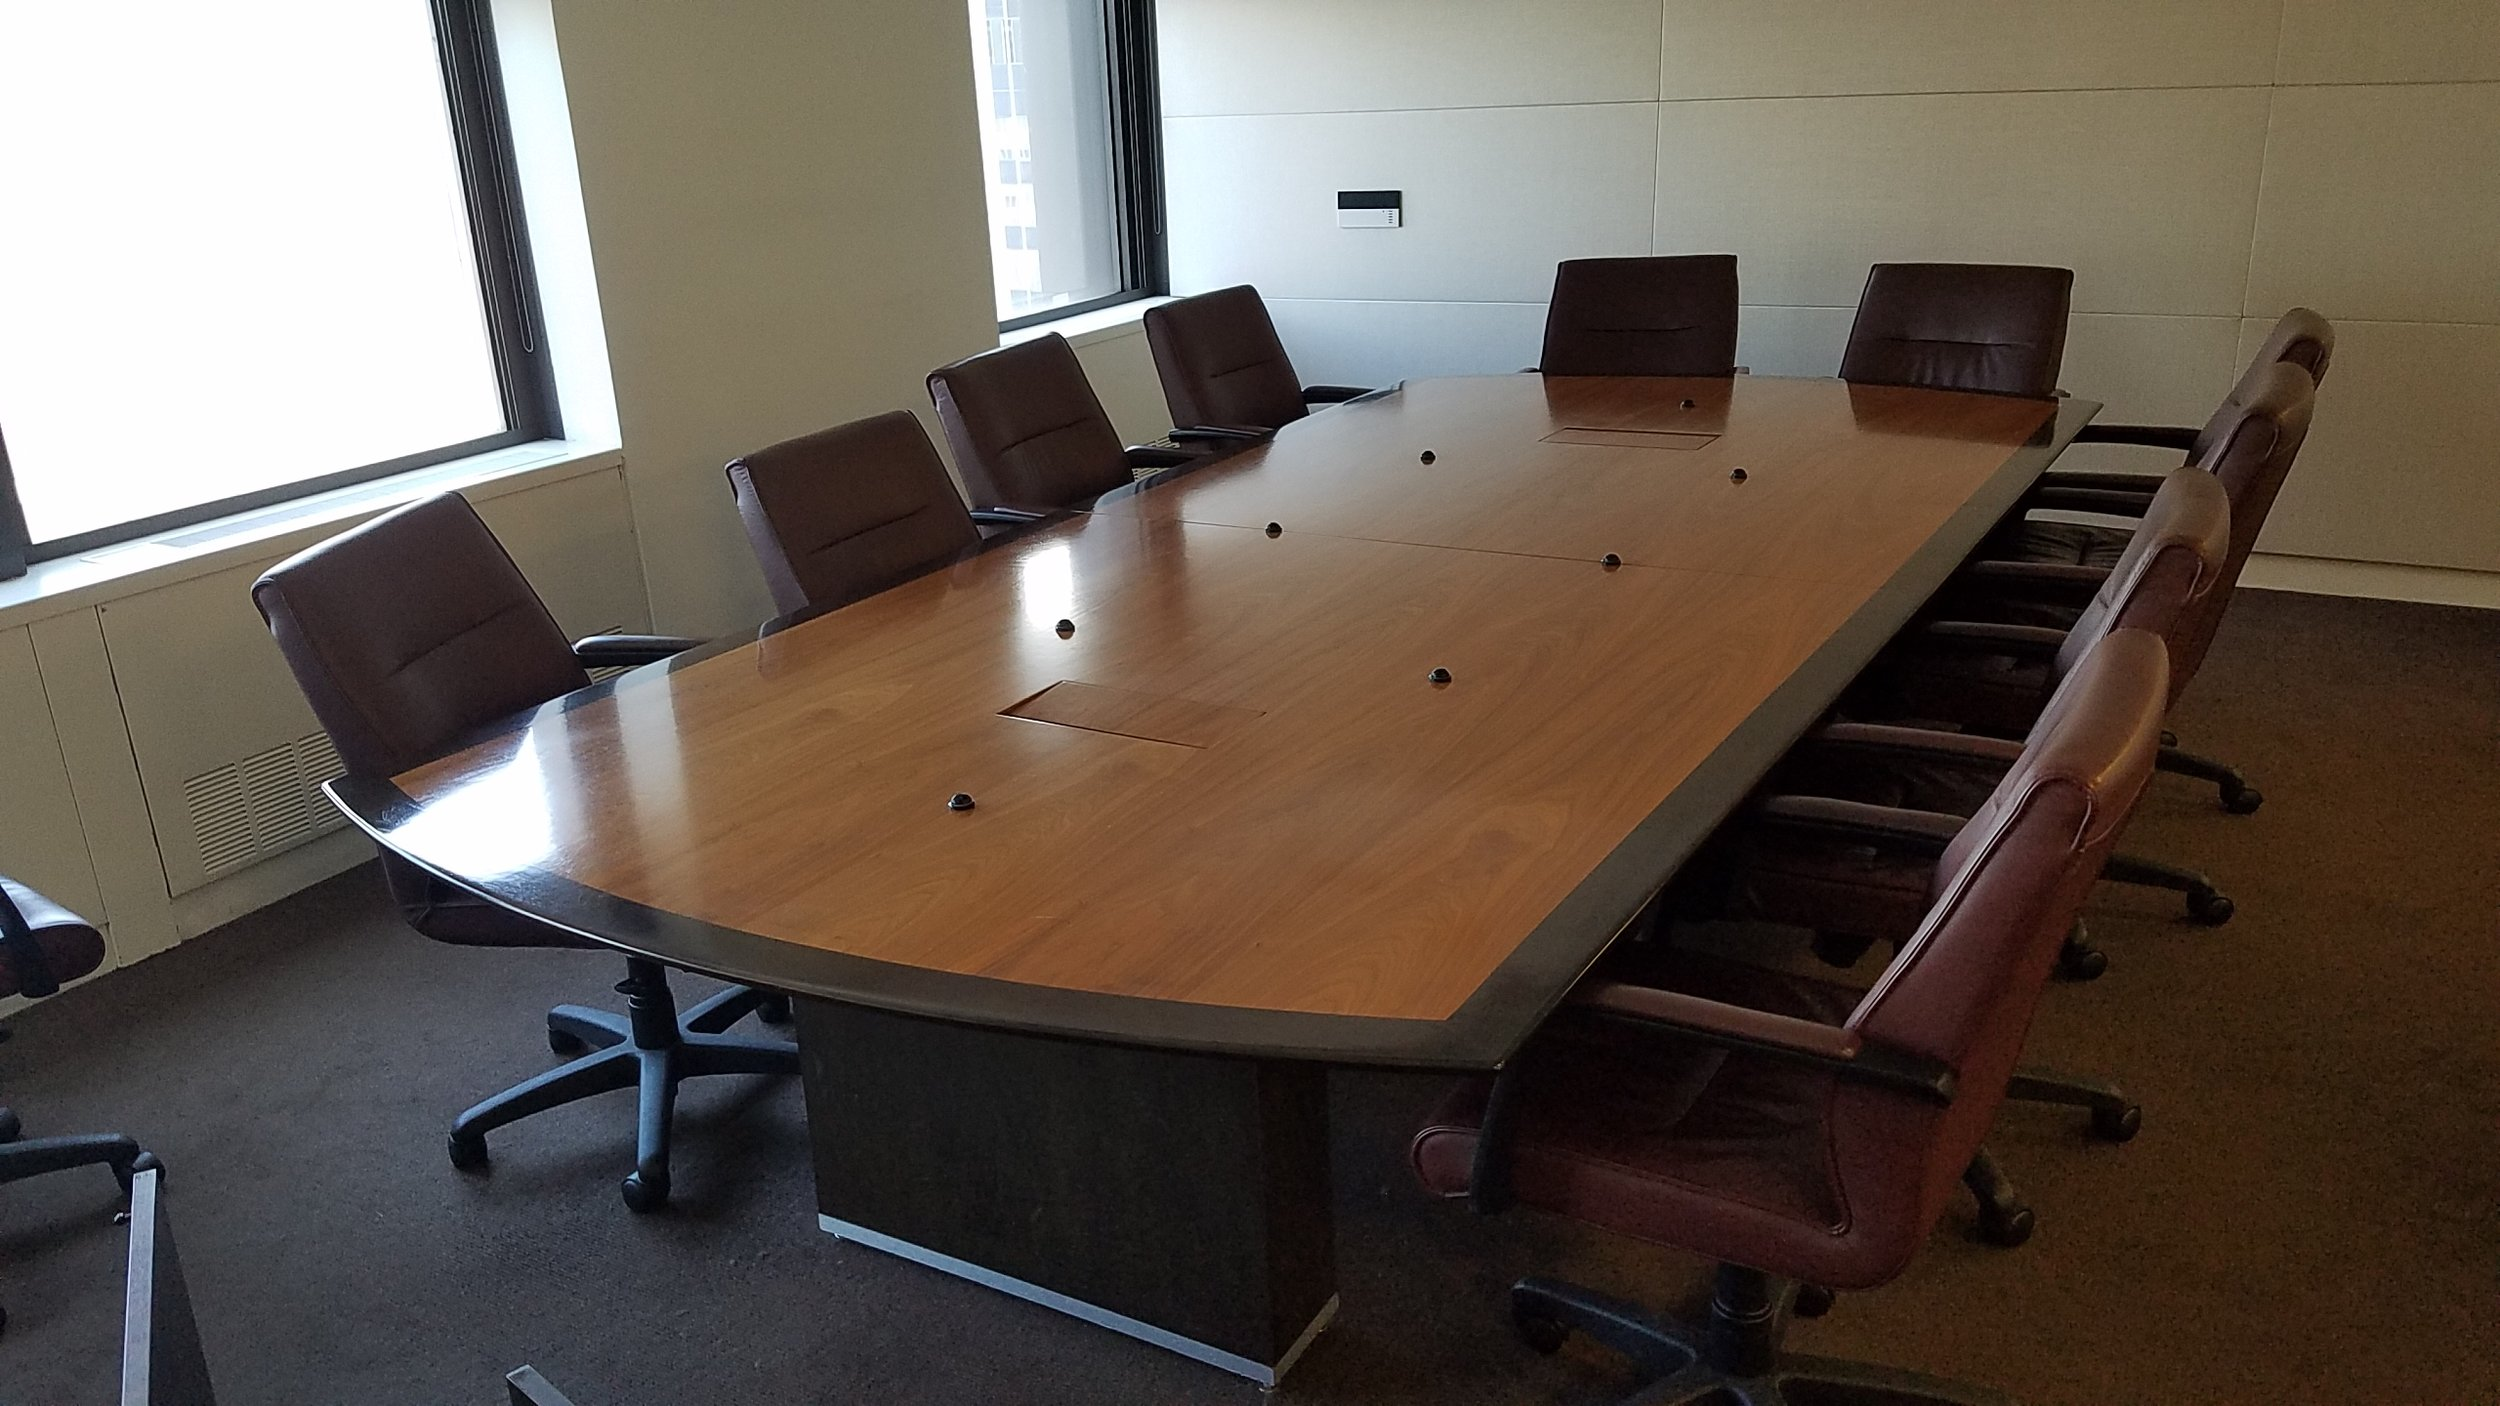 12FTx66IN CONFERENCE TABLE.jpg